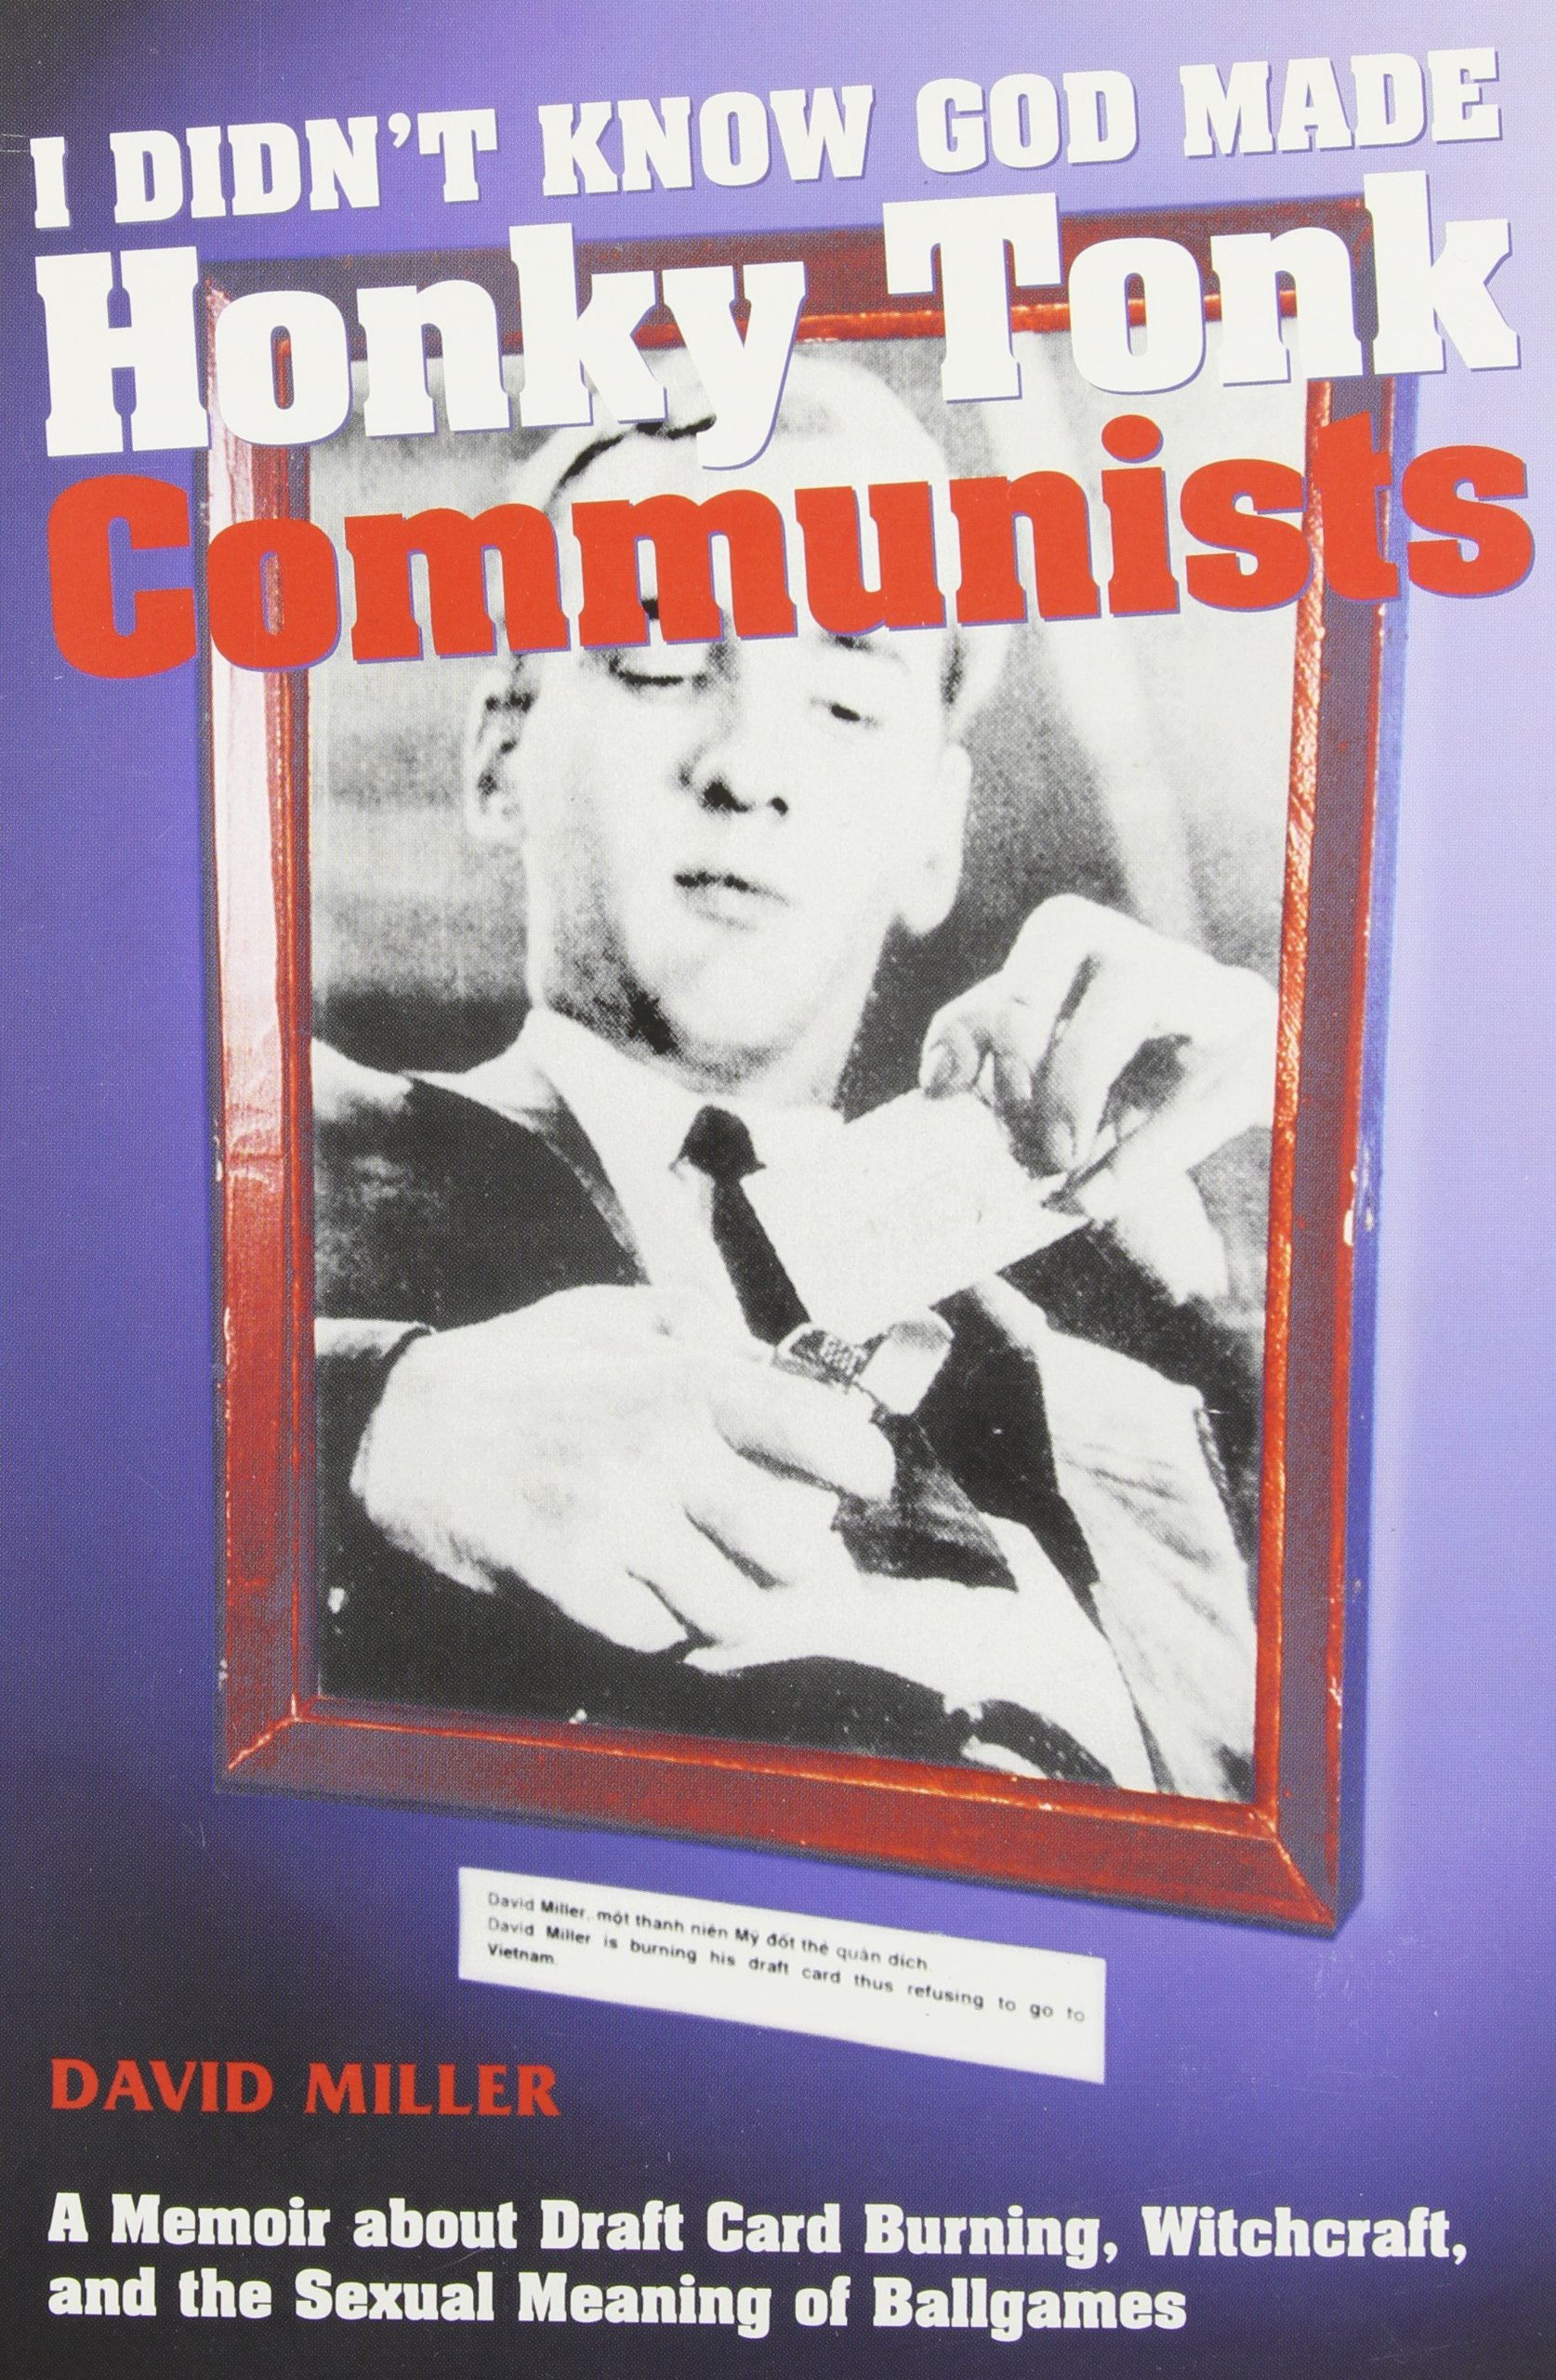 I Didn't Know God Made Honky Tonk Communists: A Memoir About Draft Card Burning, Witchcraft and the Sexual Meaning of Ballgames